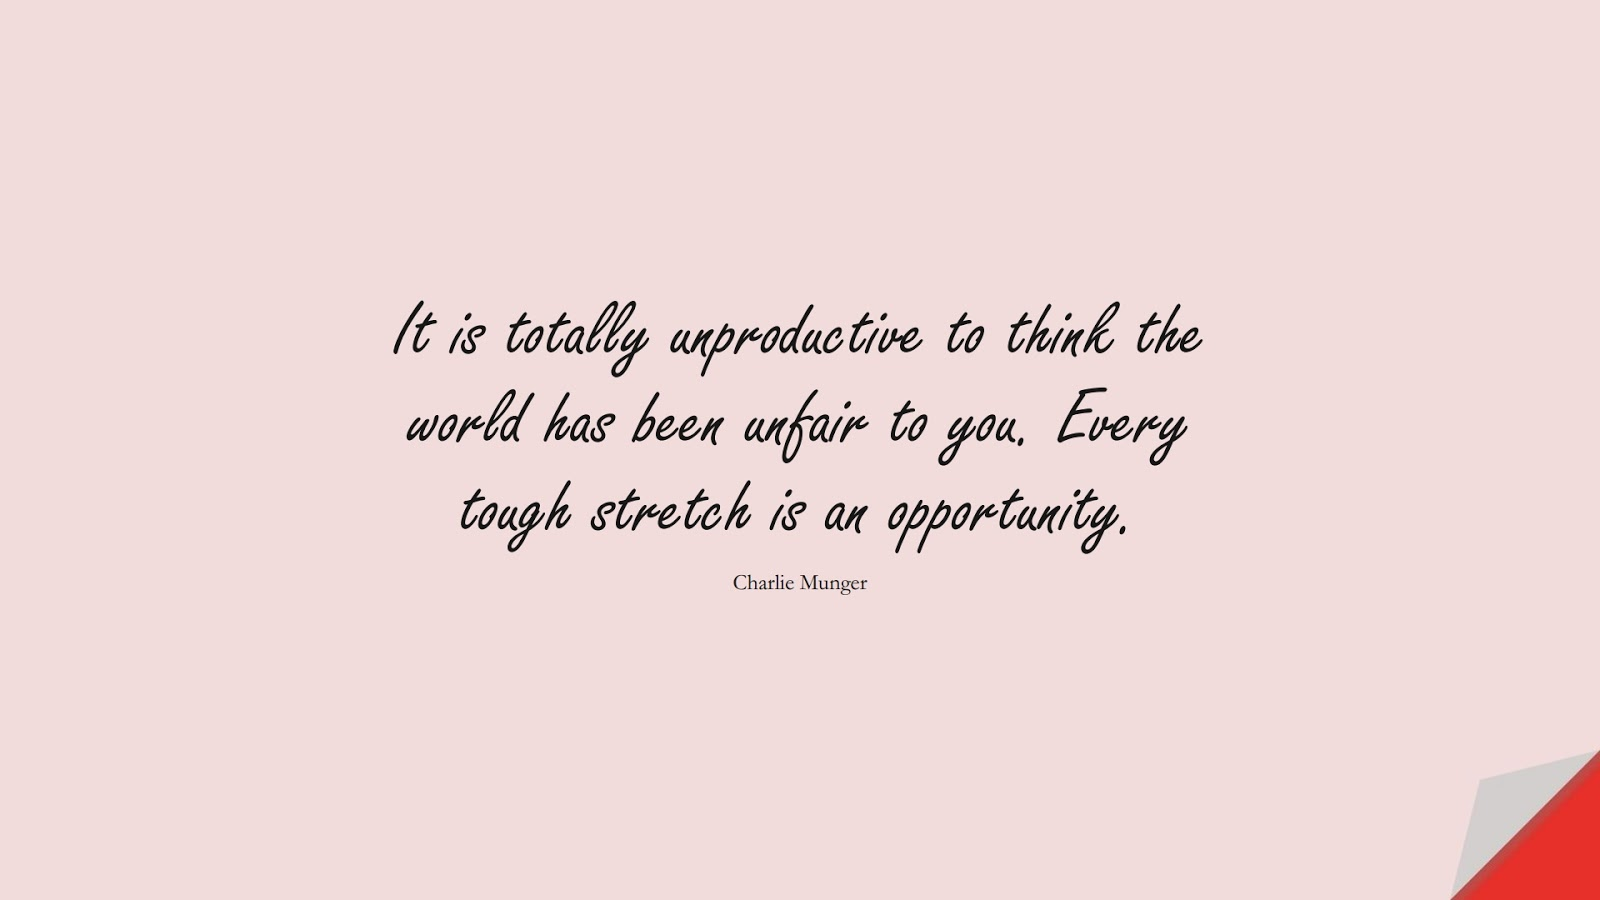 It is totally unproductive to think the world has been unfair to you. Every tough stretch is an opportunity. (Charlie Munger);  #EncouragingQuotes